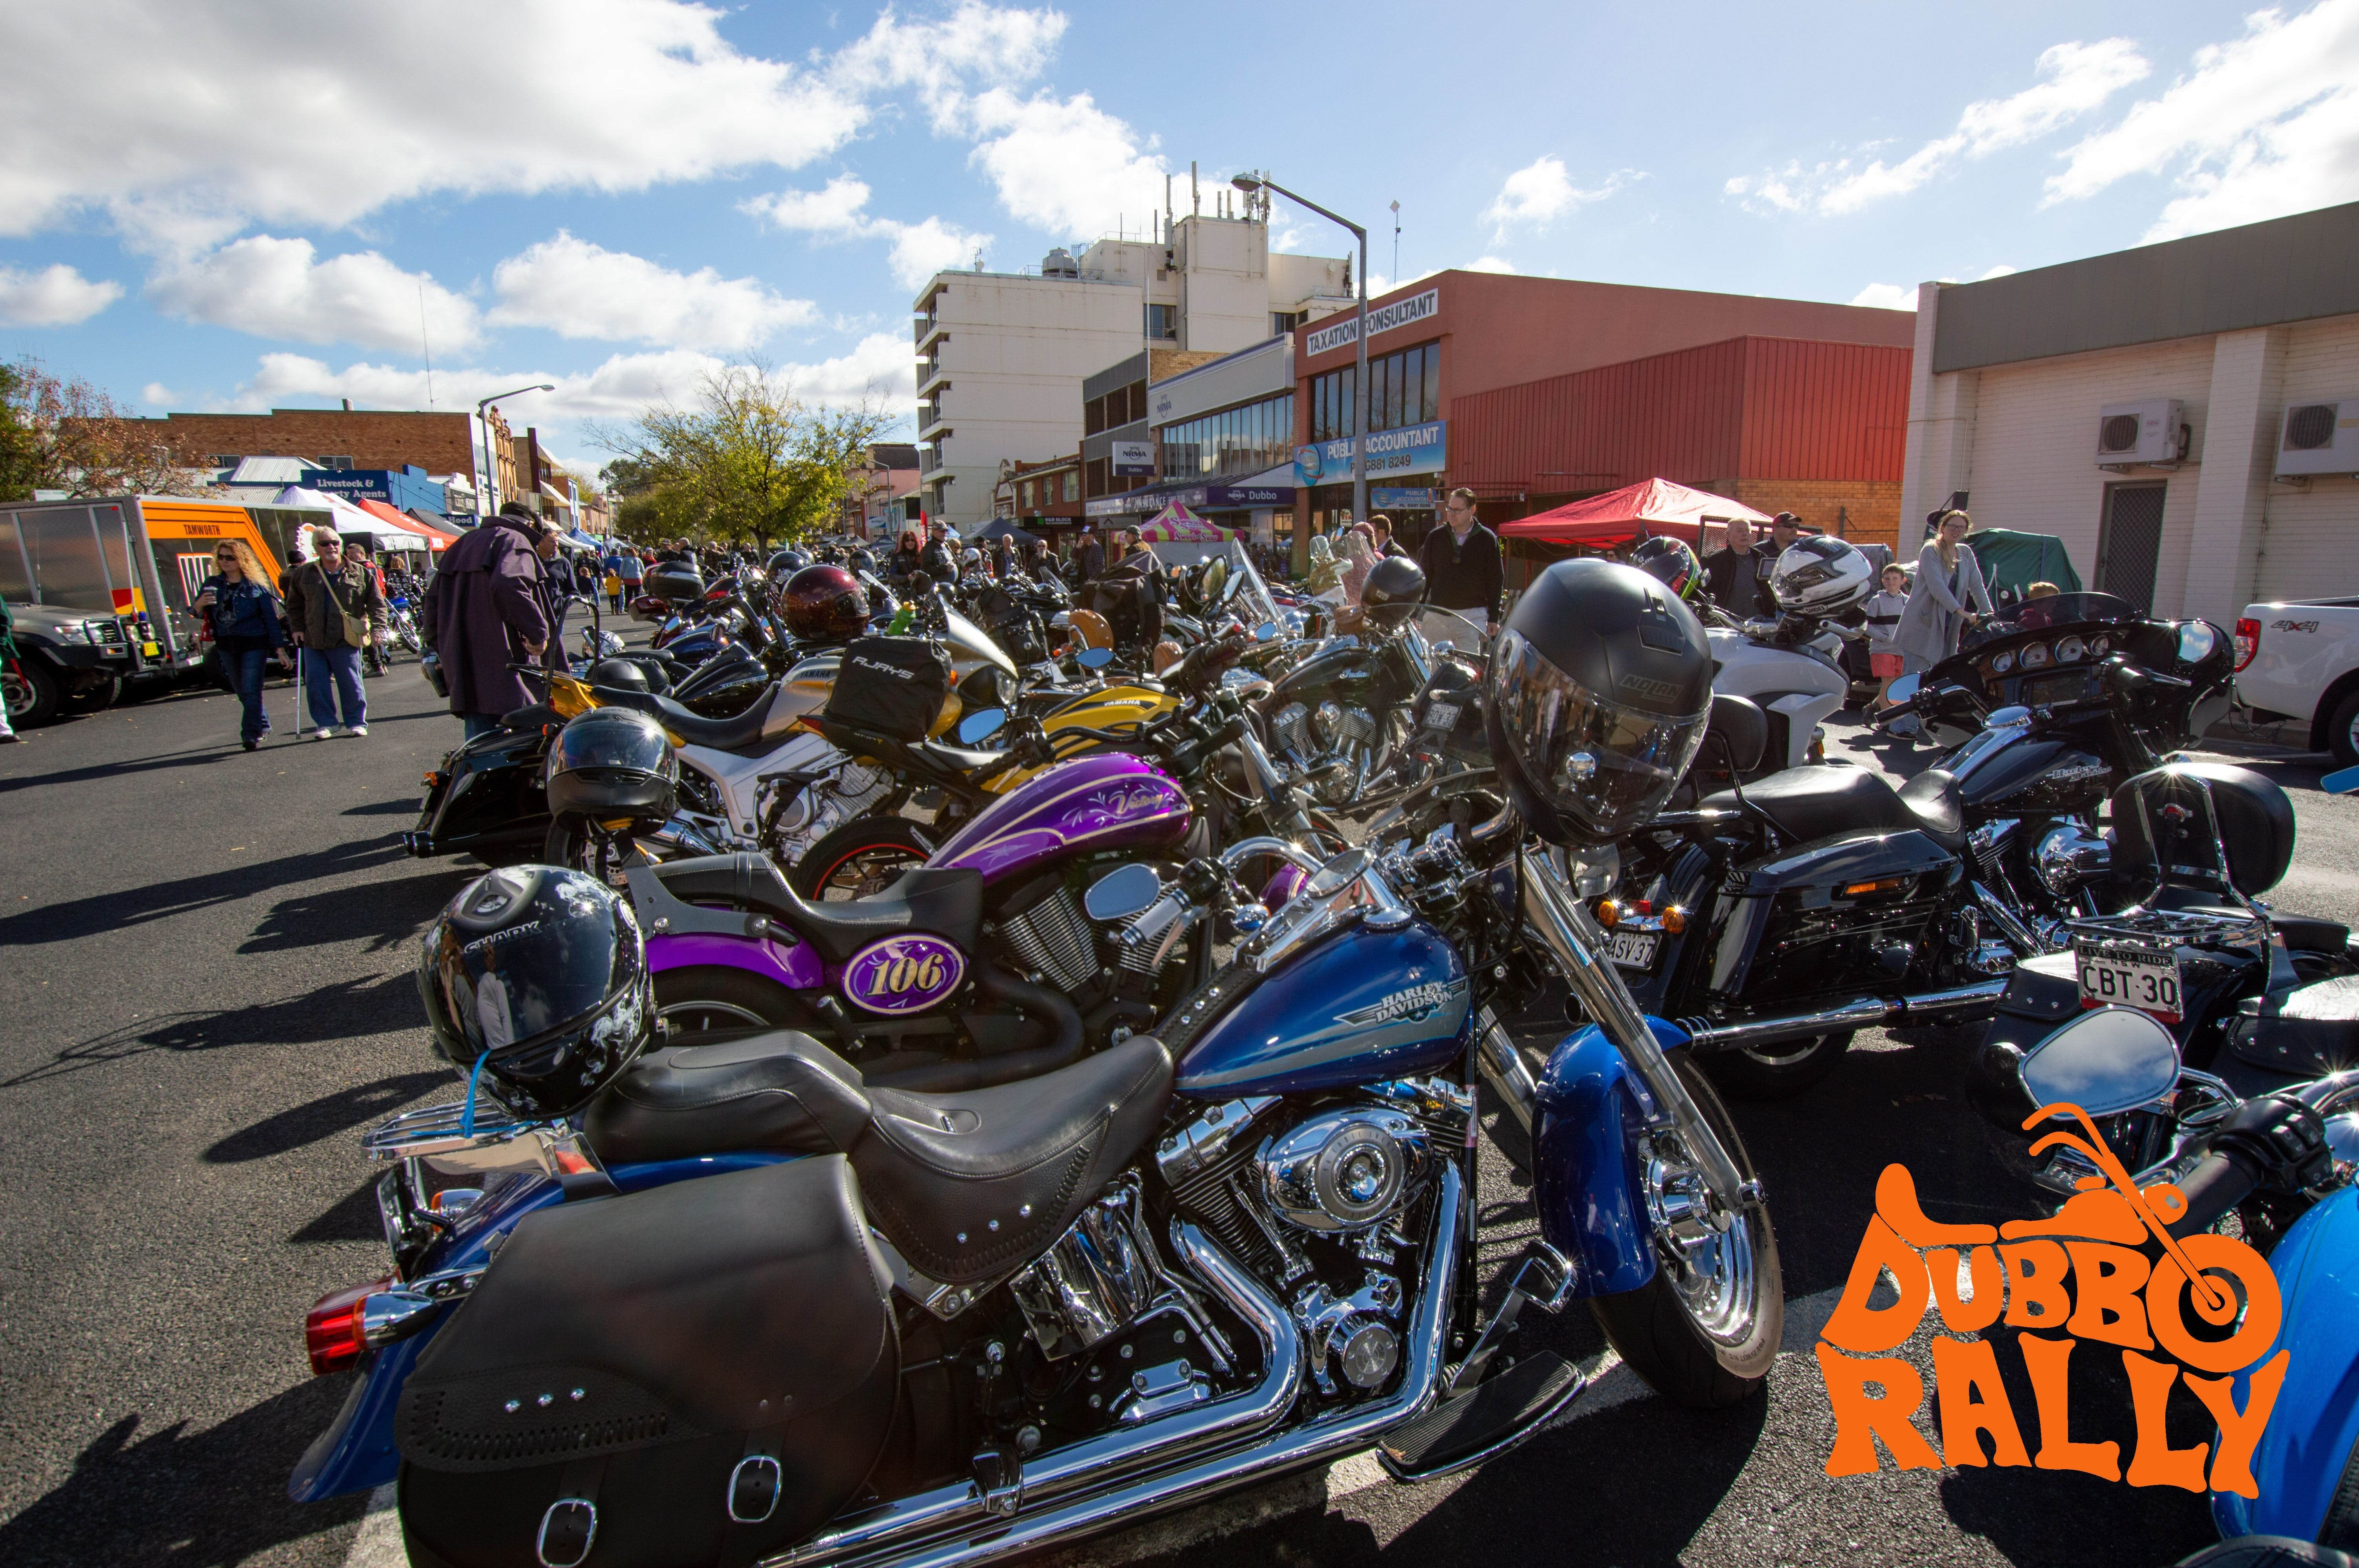 Dubbo Motor Bike Rally - Accommodation in Surfers Paradise